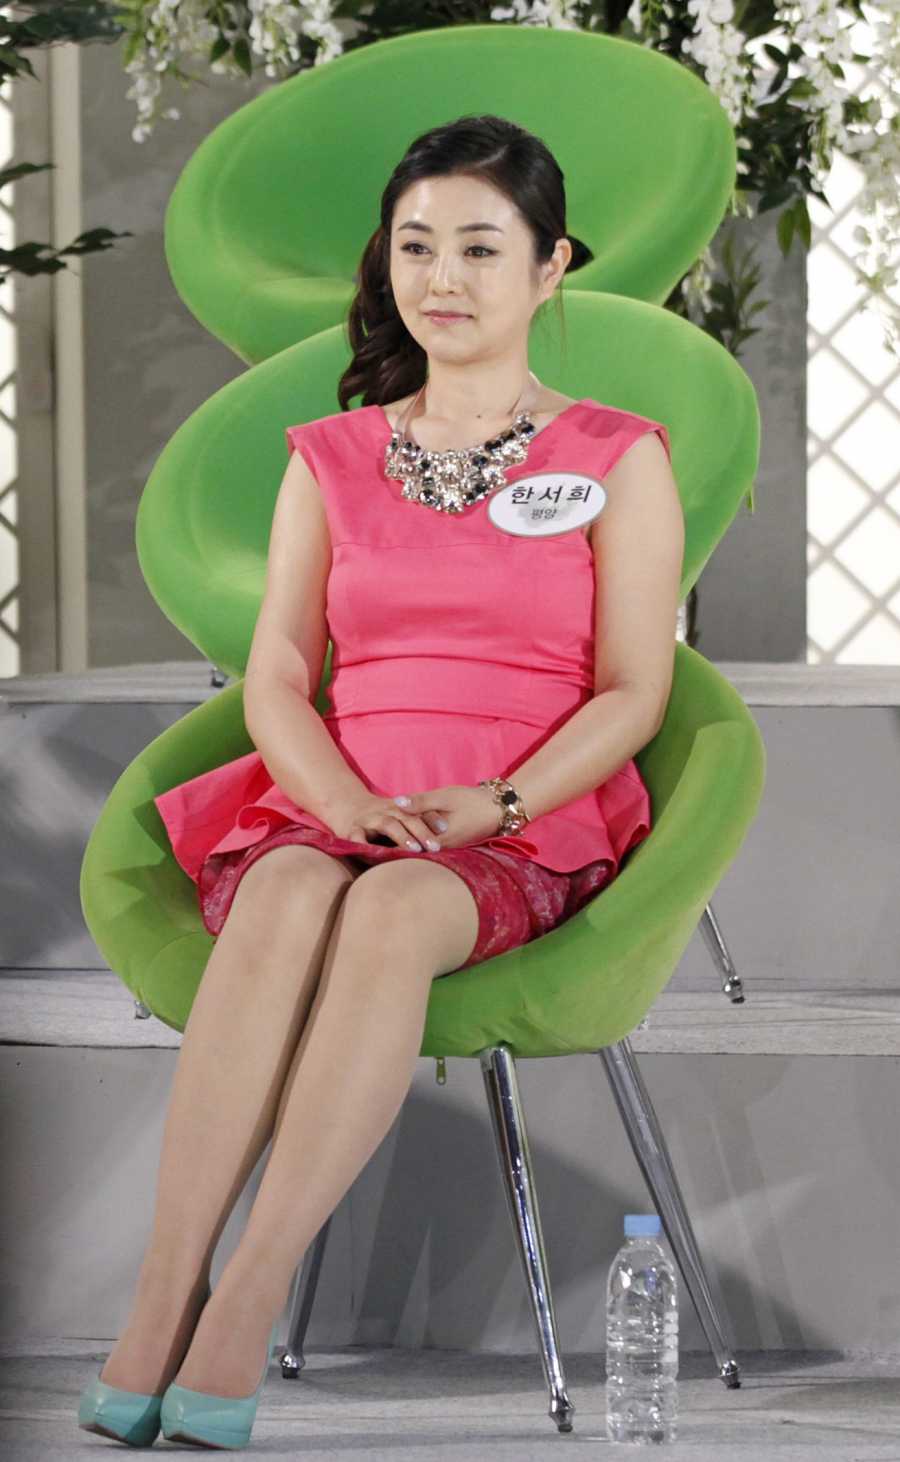 A North Korean defector living in South Korea, Han Seo-hee, 30, takes part in a TV program at a studio in Goyang, north of Seoul, on June 14, 2012.